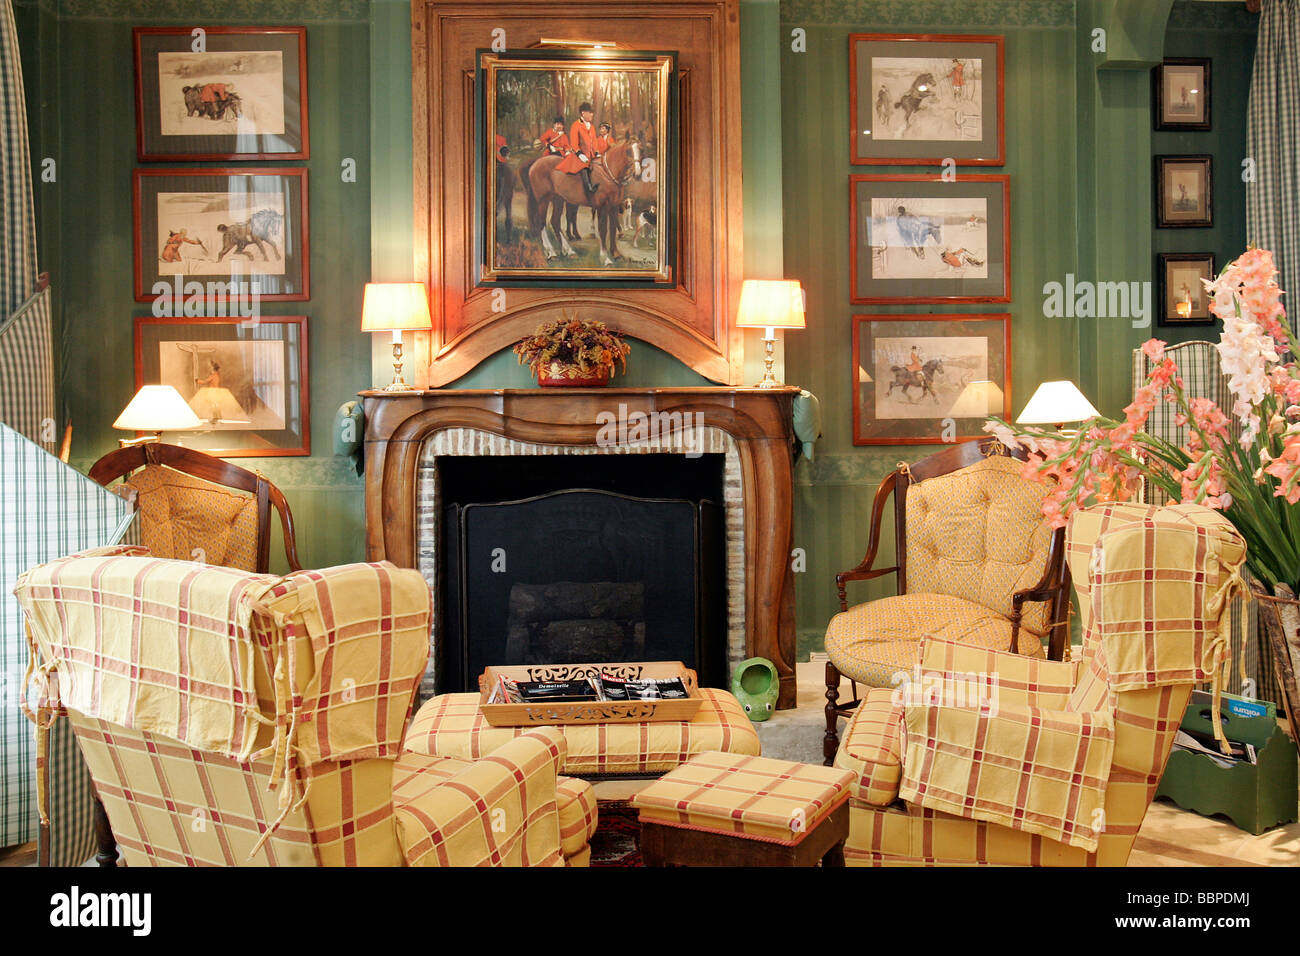 Lounge In The Hotel Saint James Trouville Sur Mer Calvados 14 Stock Photo Alamy